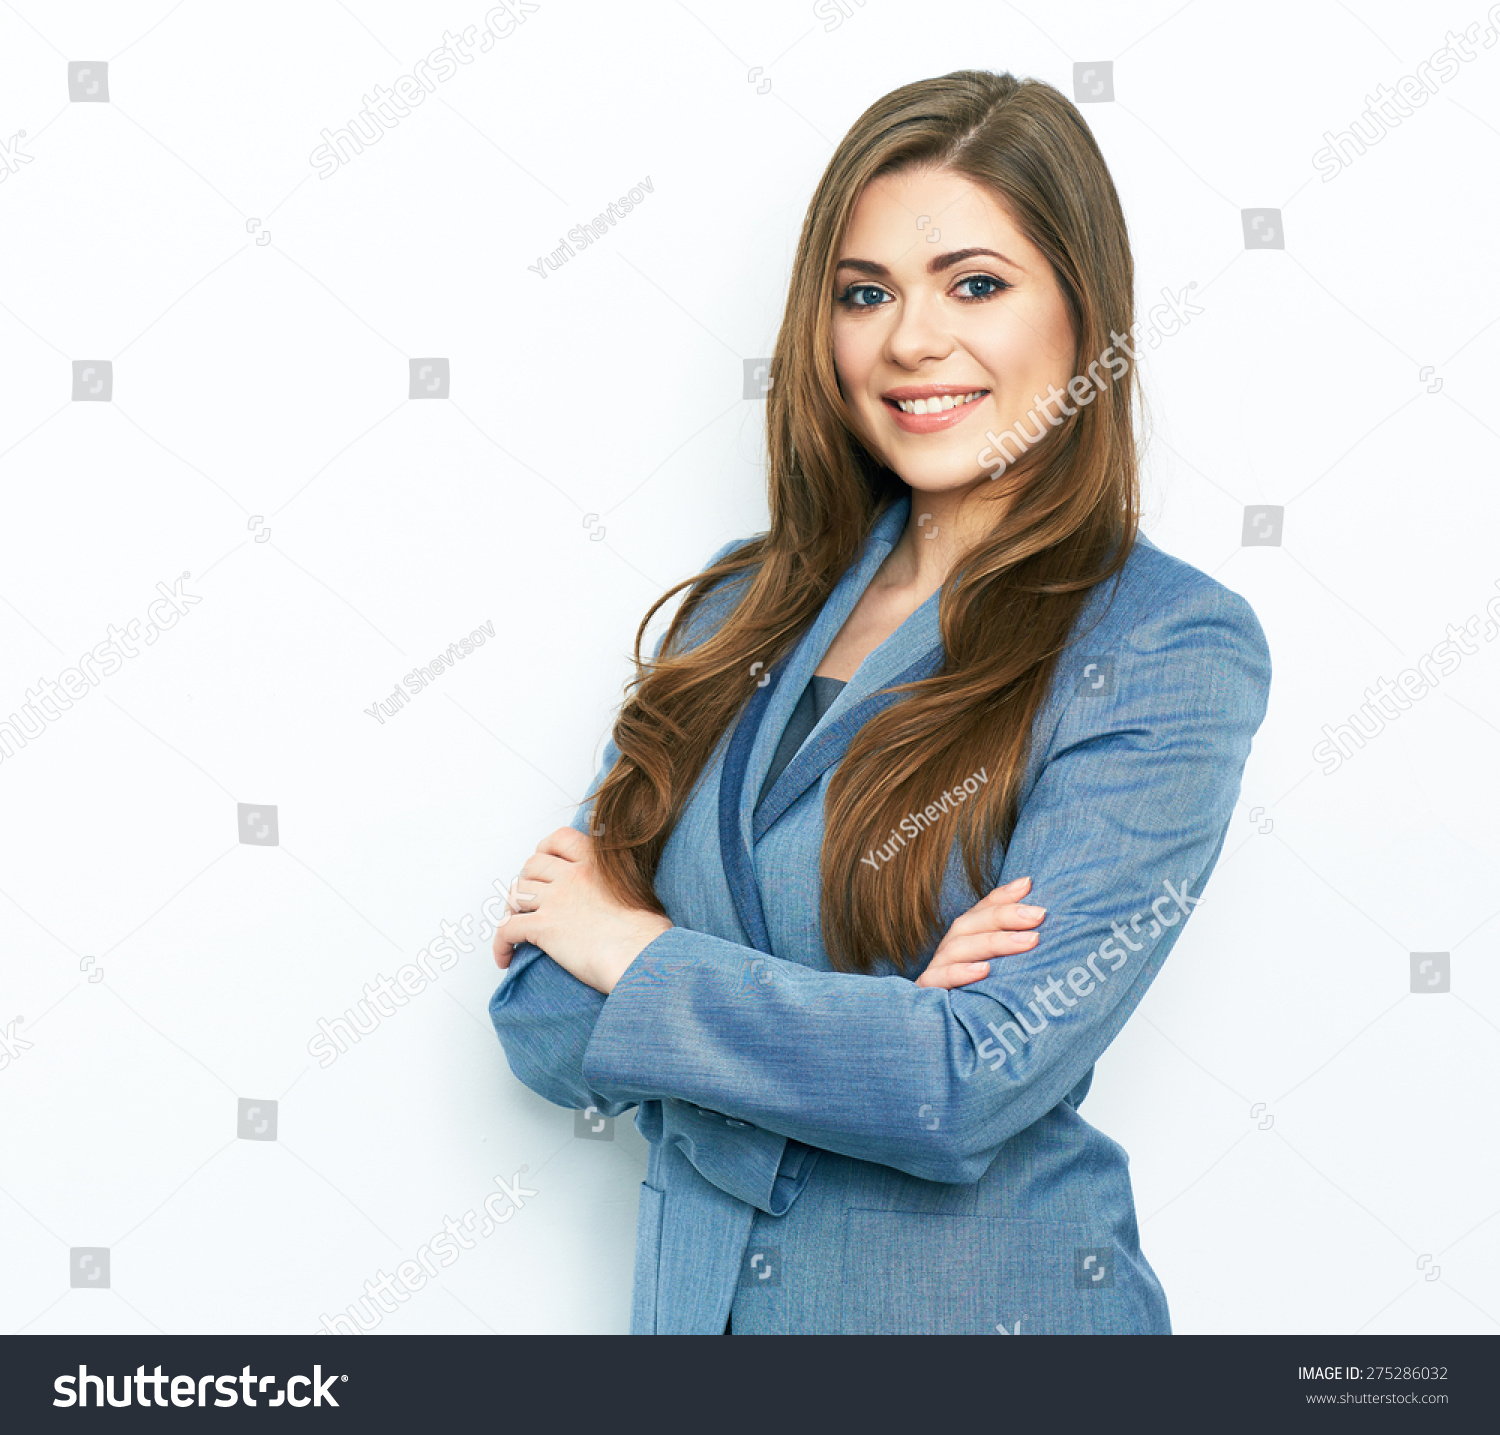 Smiling Business Woman Blue Suit Dressed Stock Photo ...